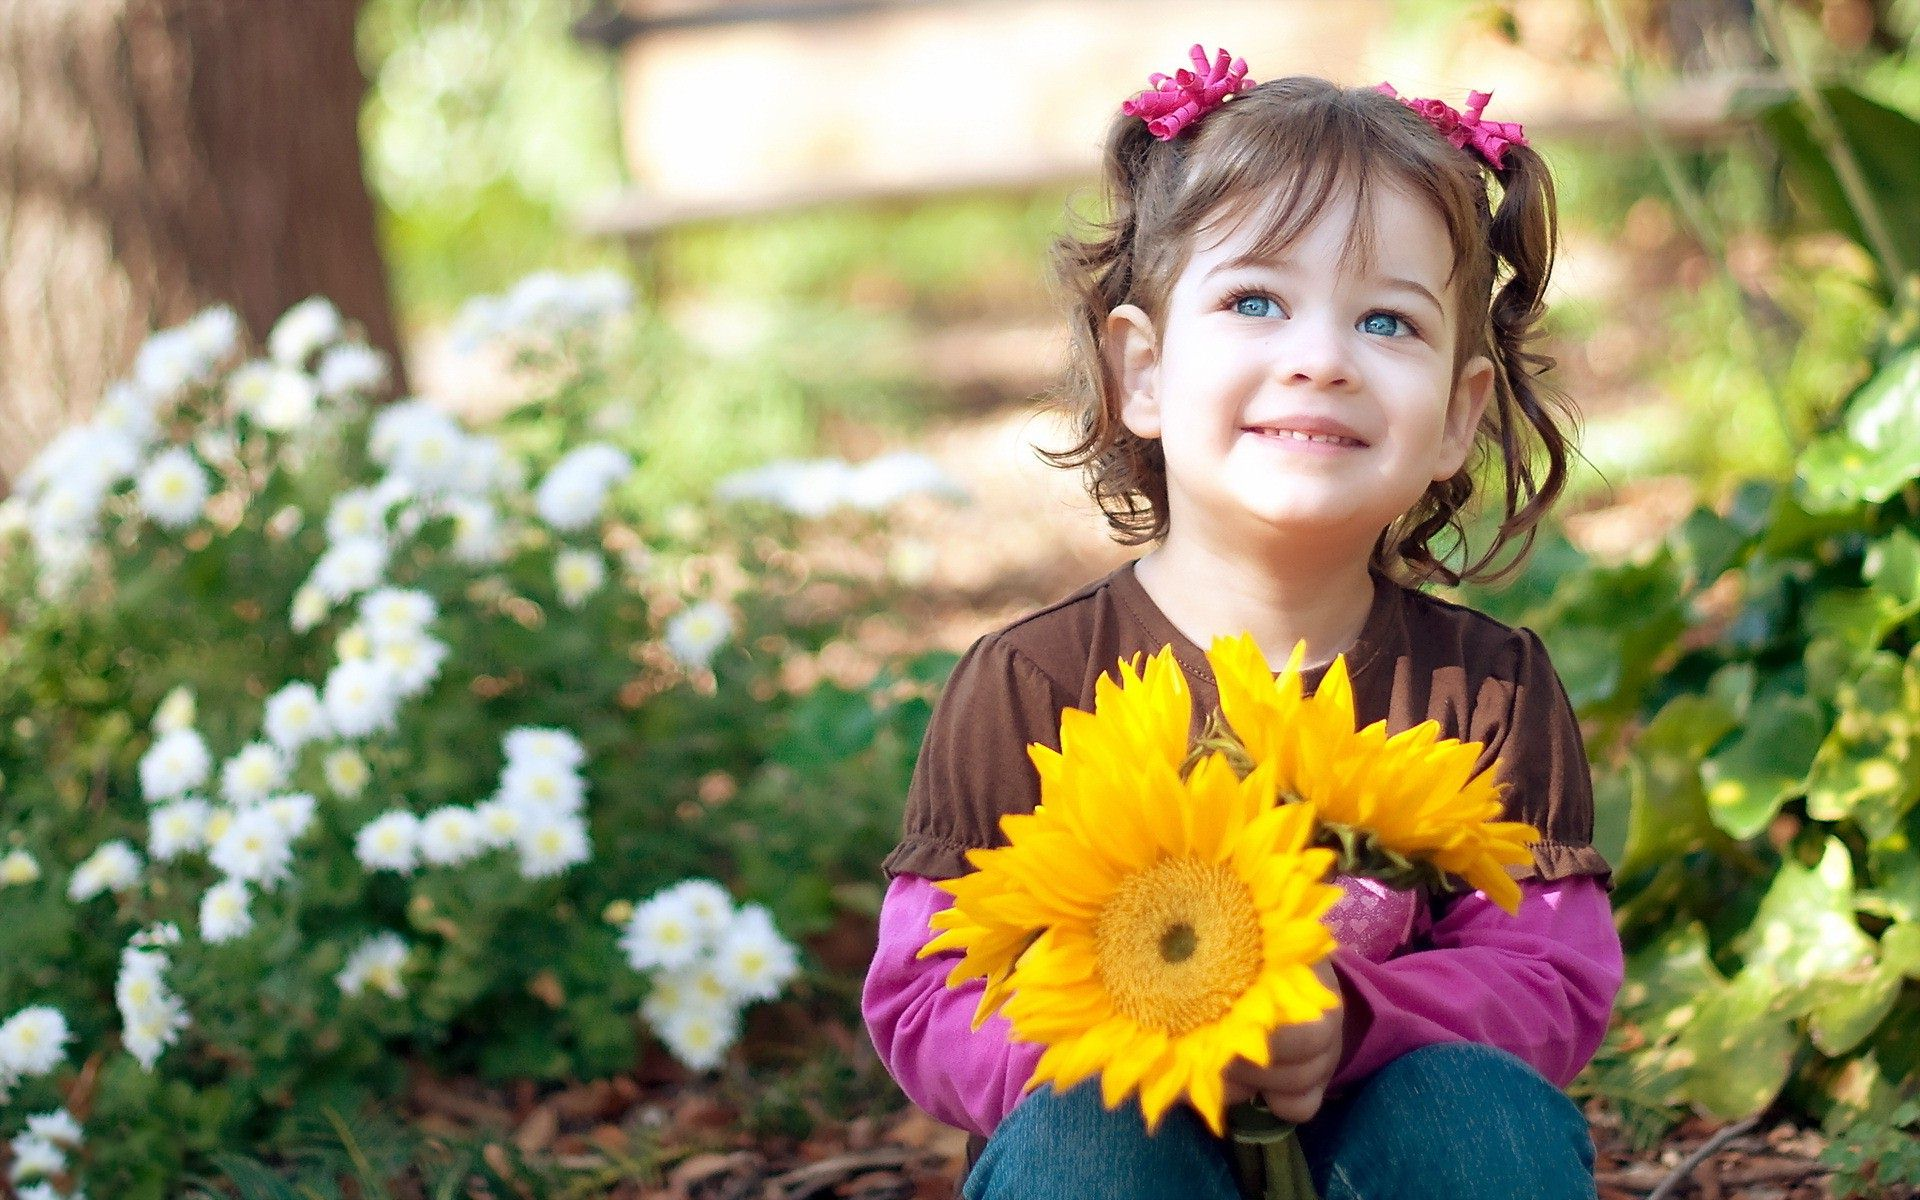 Child-Girl-with-Sunflowers-Images